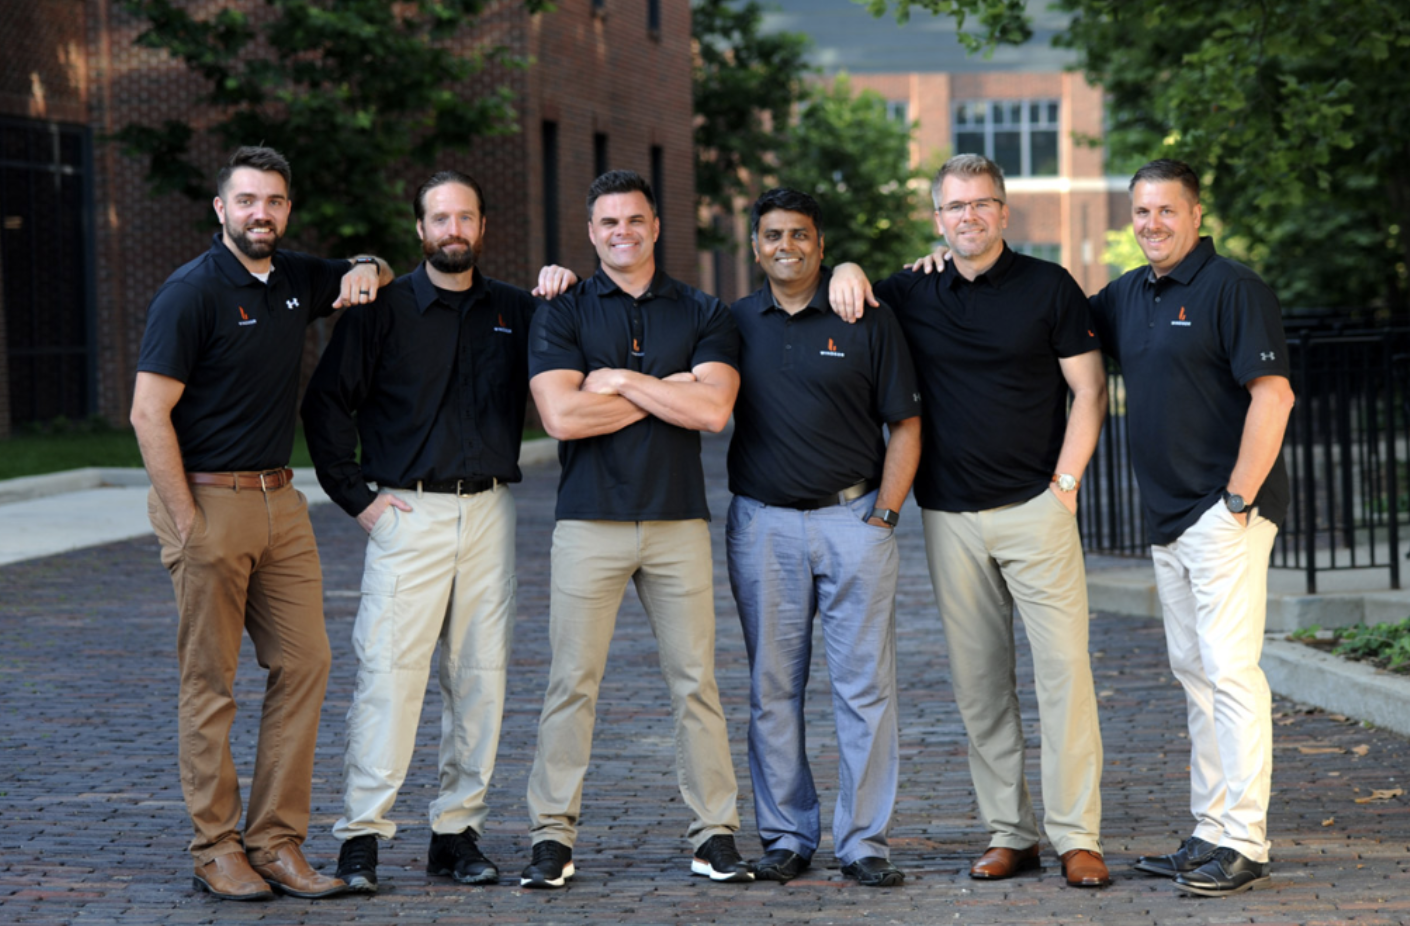 The leadership team at Windsor including Eric VanZwieten, second from the right.